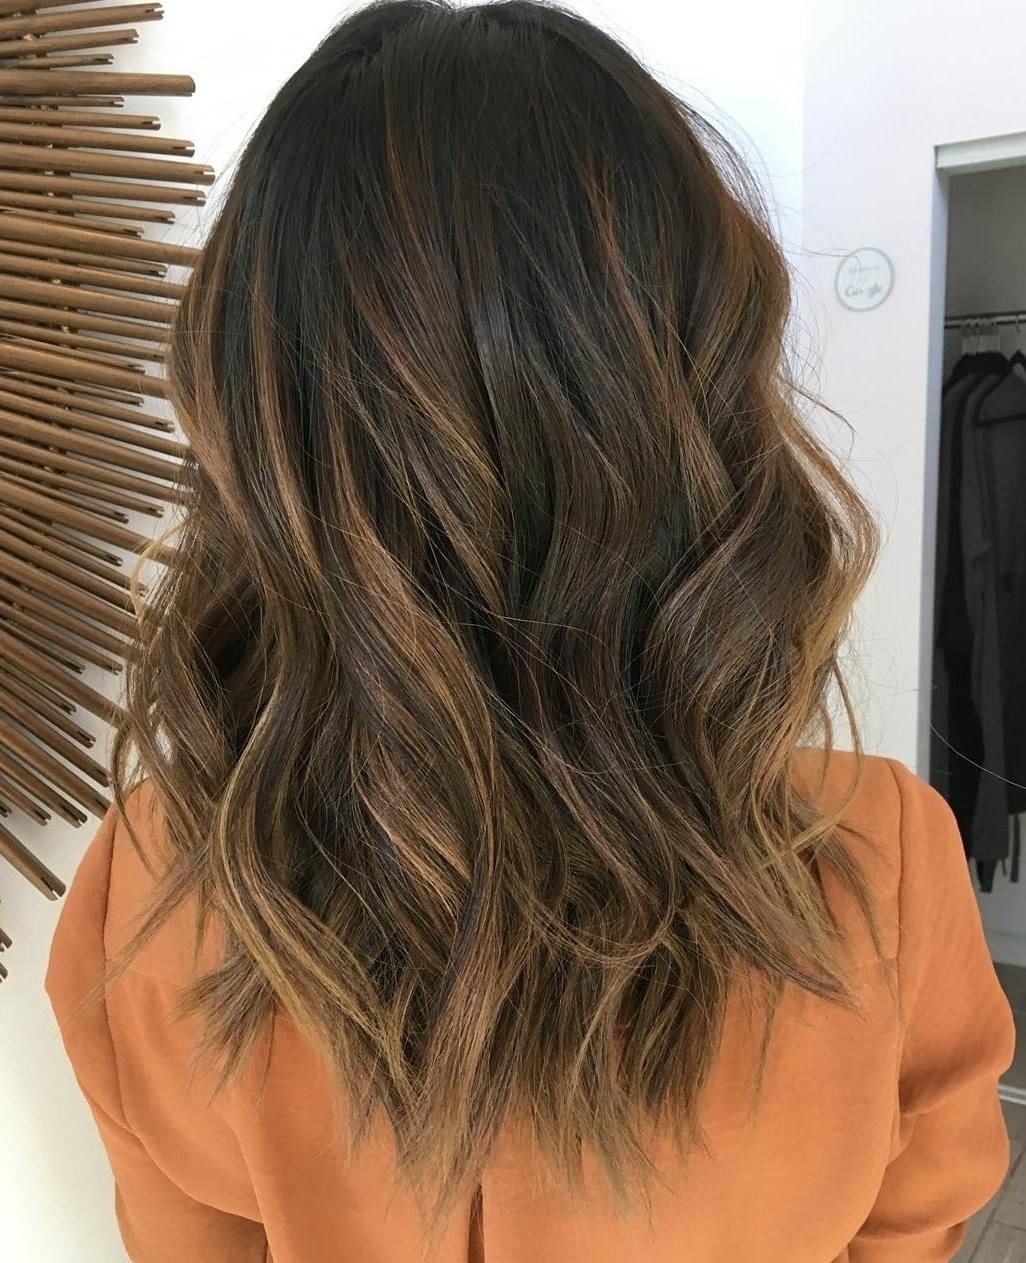 10 Spectacular Blonde And Auburn Hair Color Ideas 60 balayage hair color ideas with blonde brown caramel and red 2020